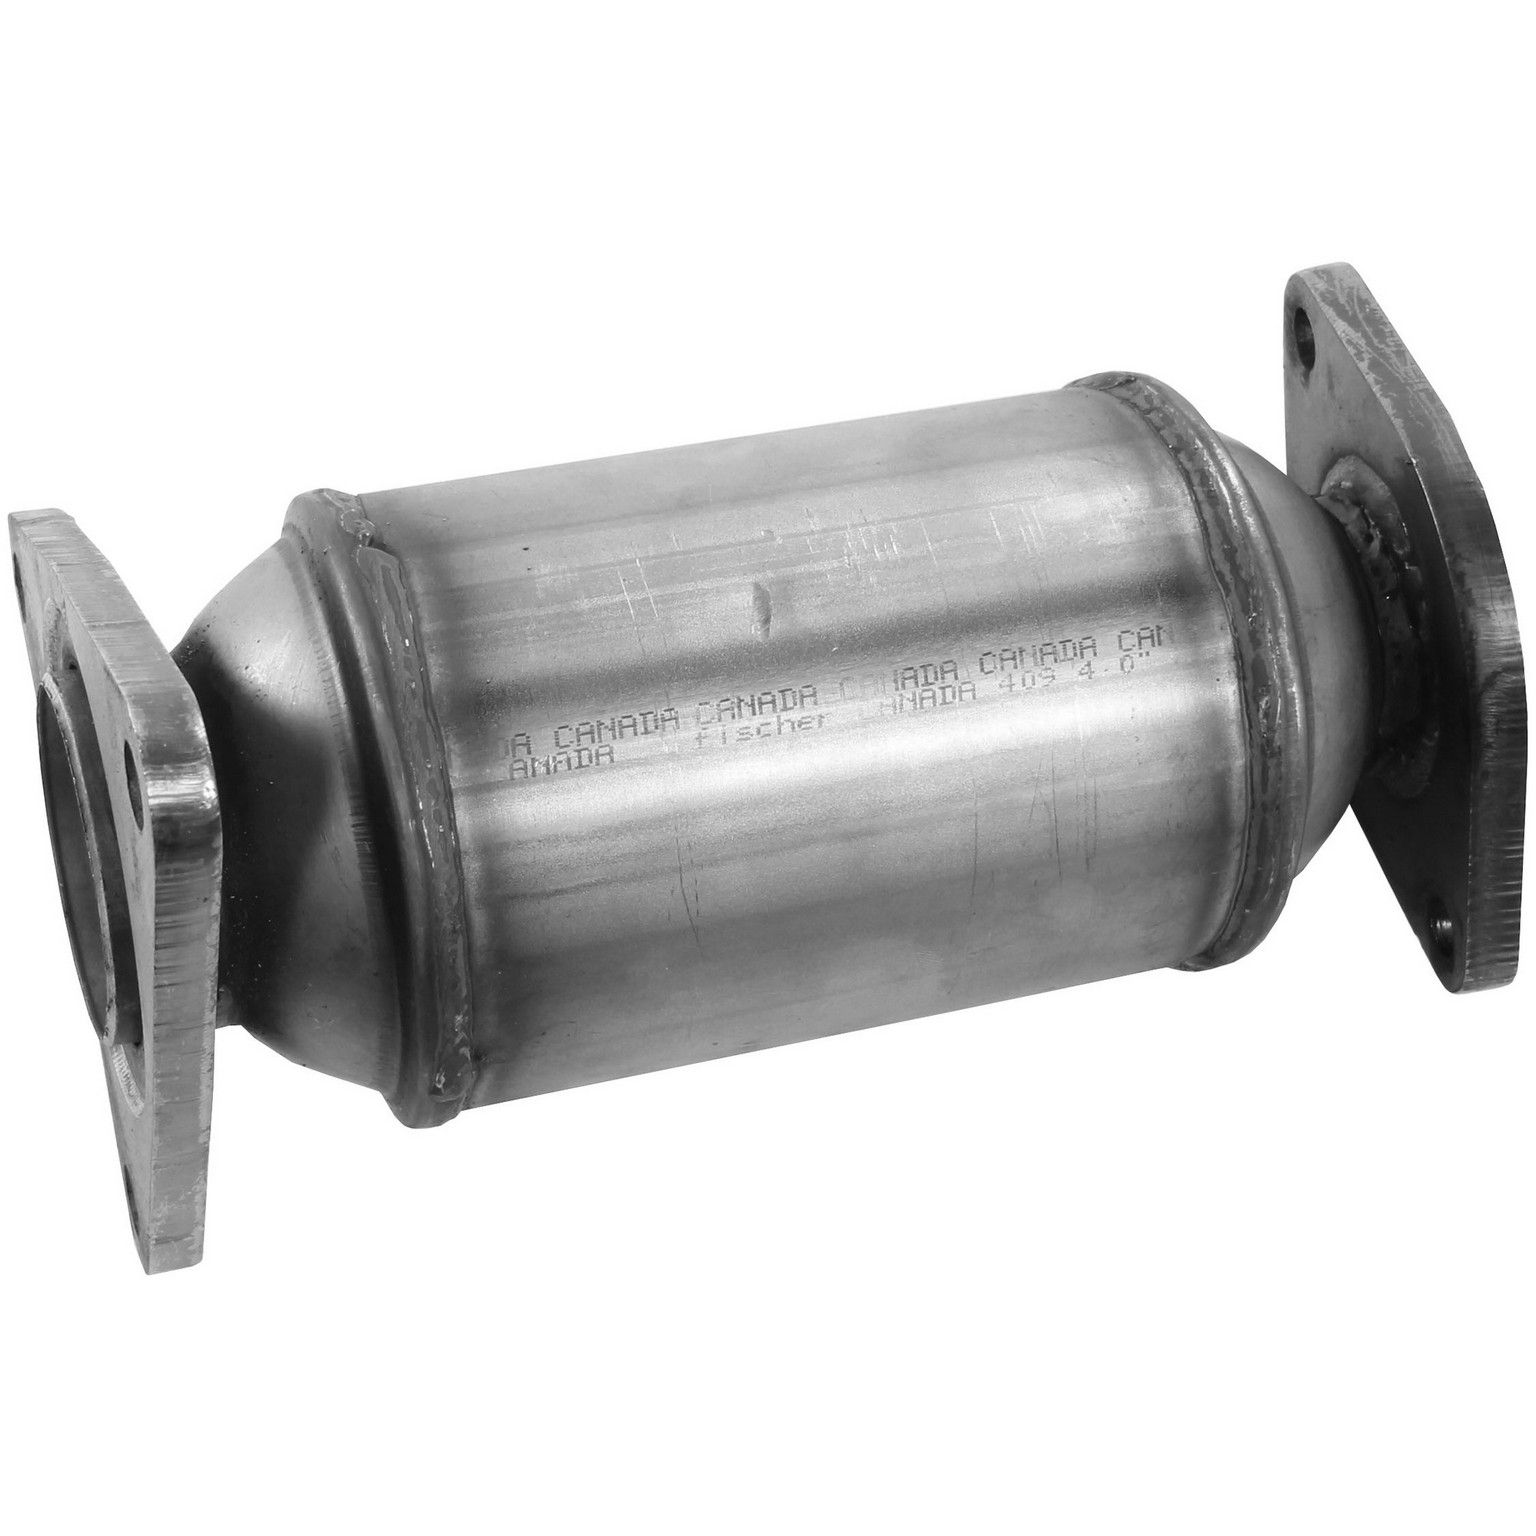 2001 Lexus Ls430 Catalytic Converter Front Left 8 Cyl 43l Walker 16571 Fits Fed Calif Emiss Models Not Legal For Sale In The State Of California: Lexus Ls430 Catalytic Converter Replacement At Woreks.co